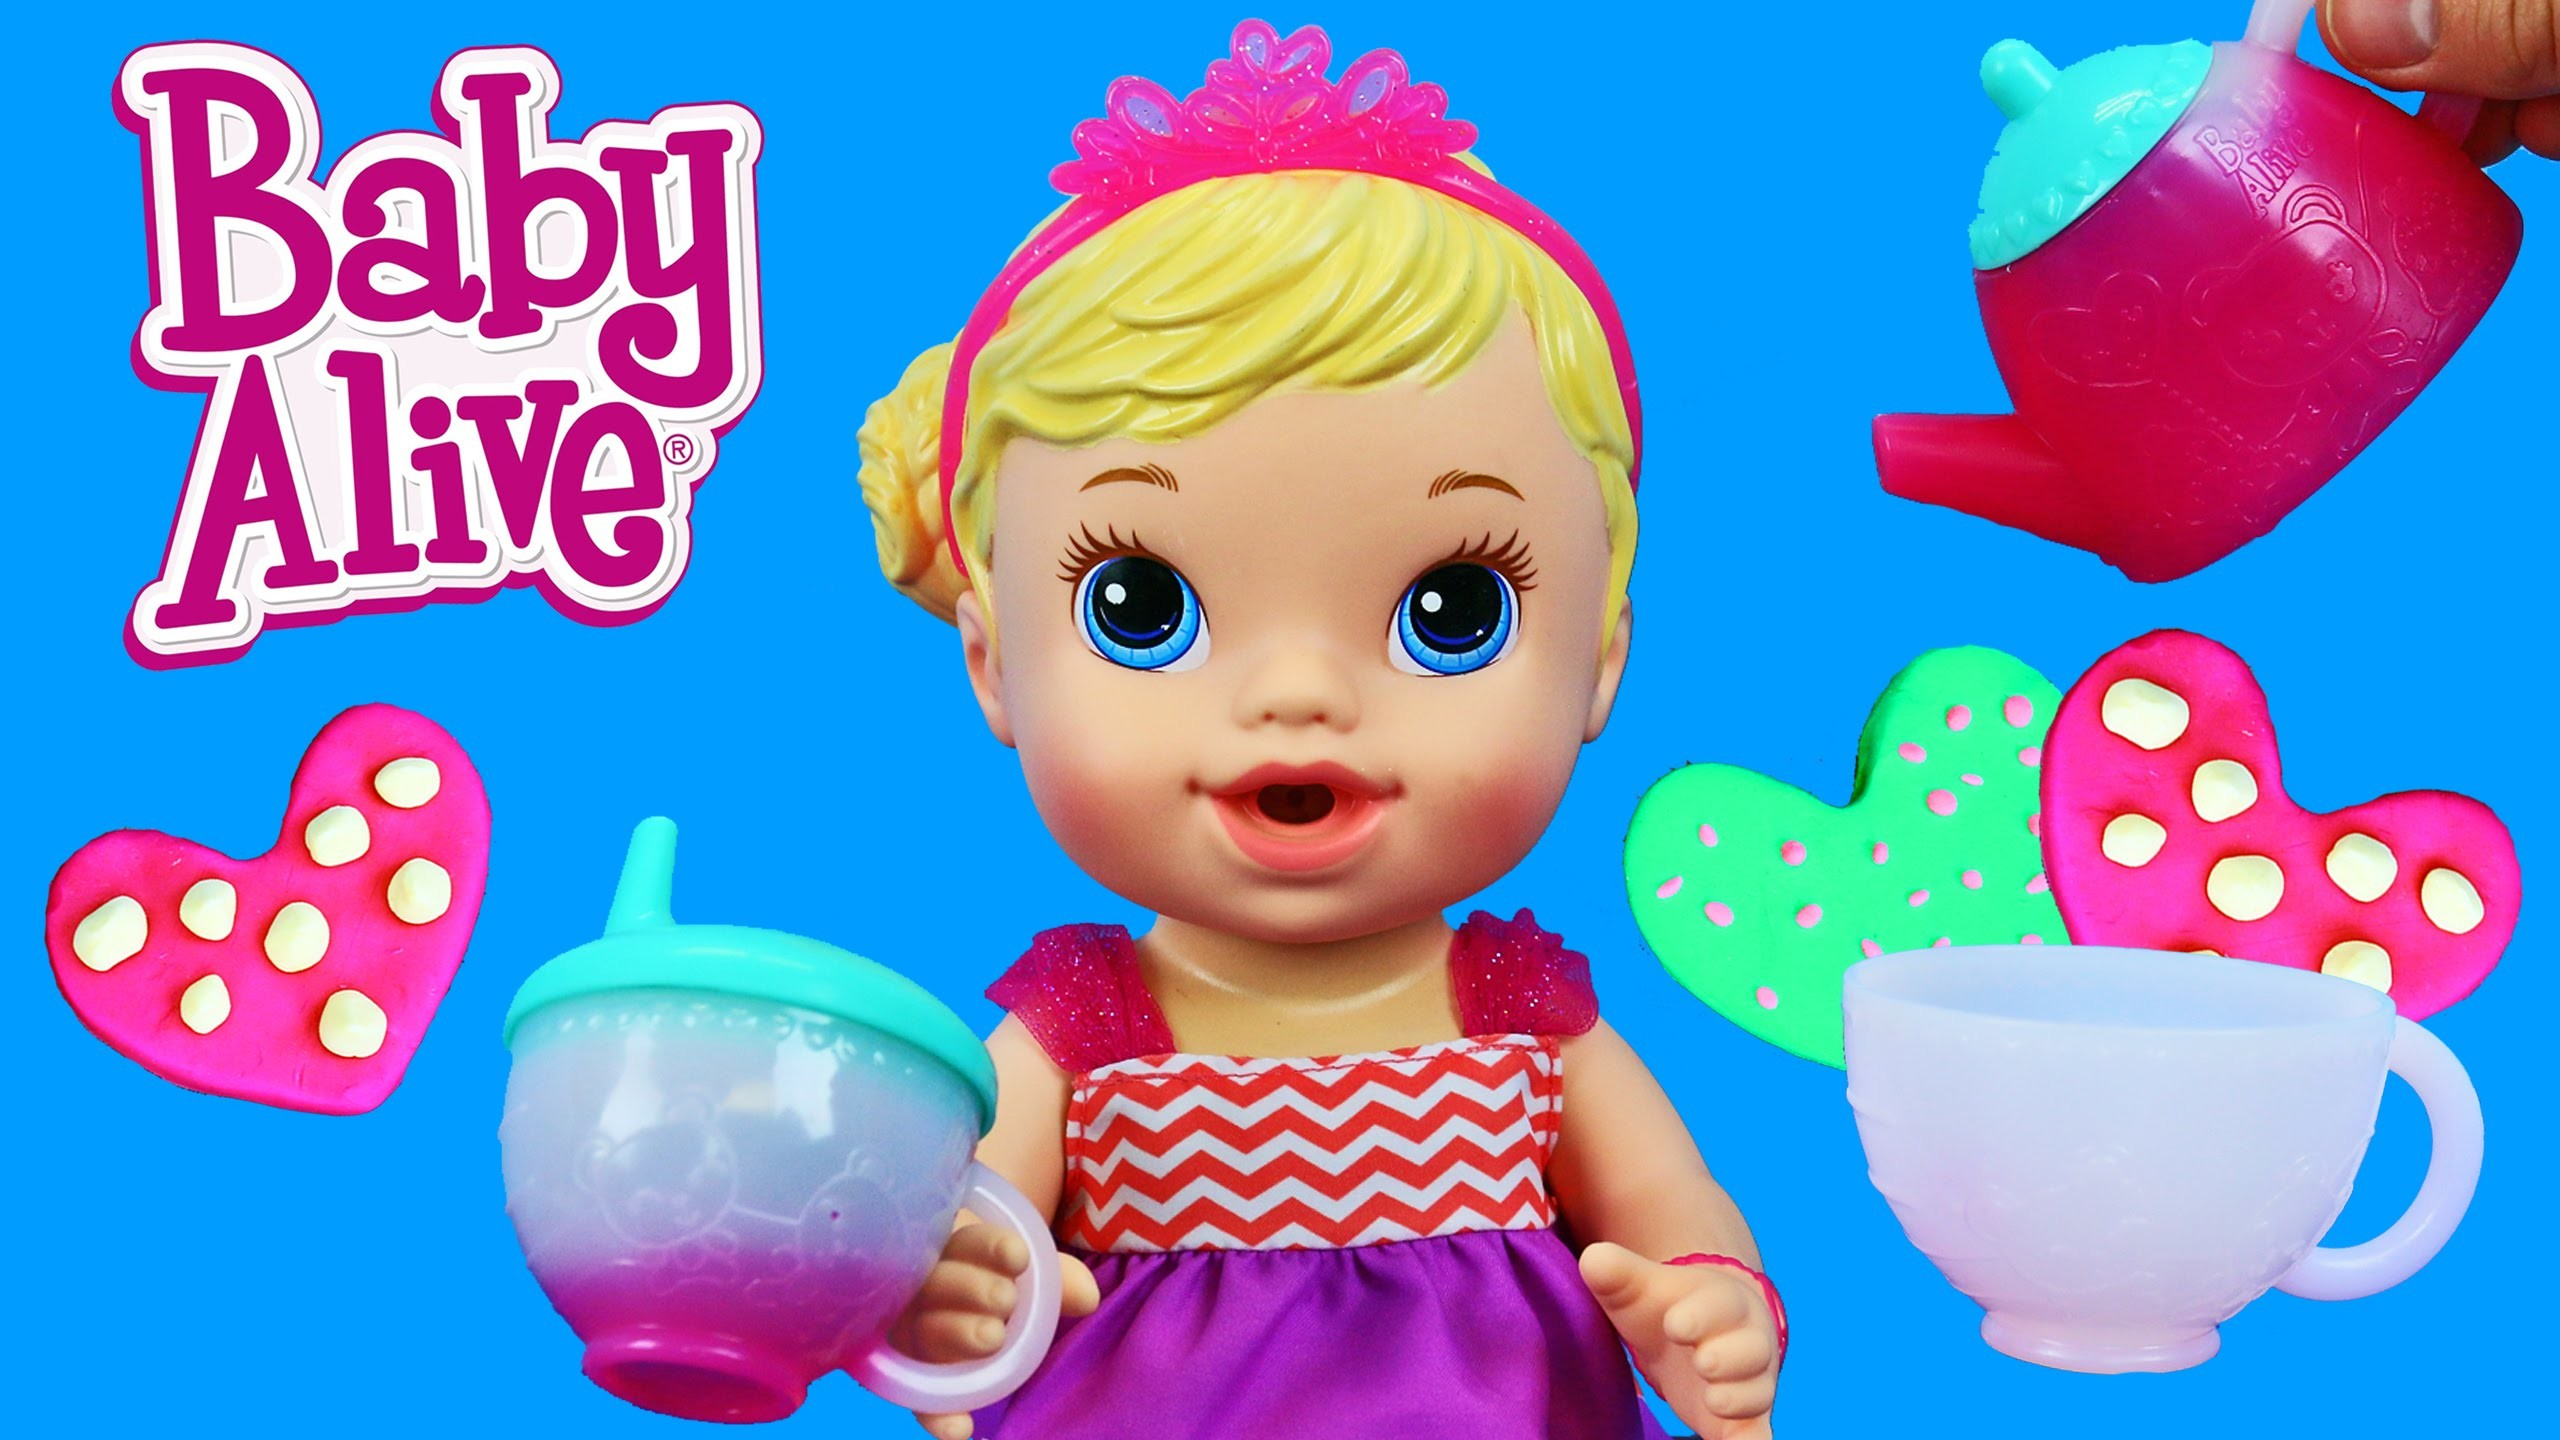 Baby Alive Teacup Surprise Baby Doll Fun Tea Party with DIY Play Doh Cookies by DisneyCarToys